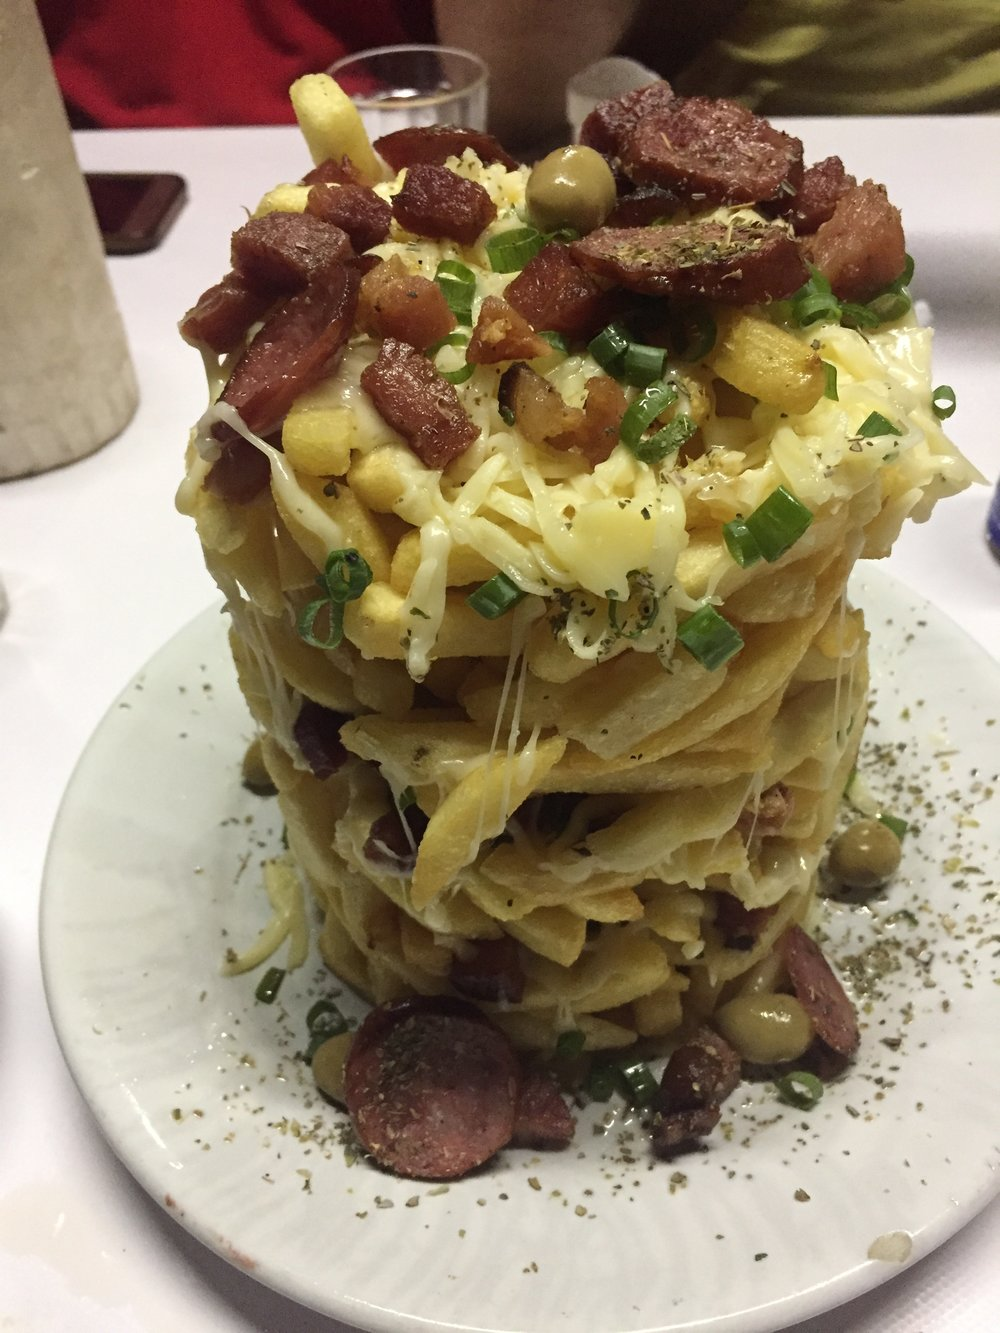 Torre de batatas one night (Potato tower)